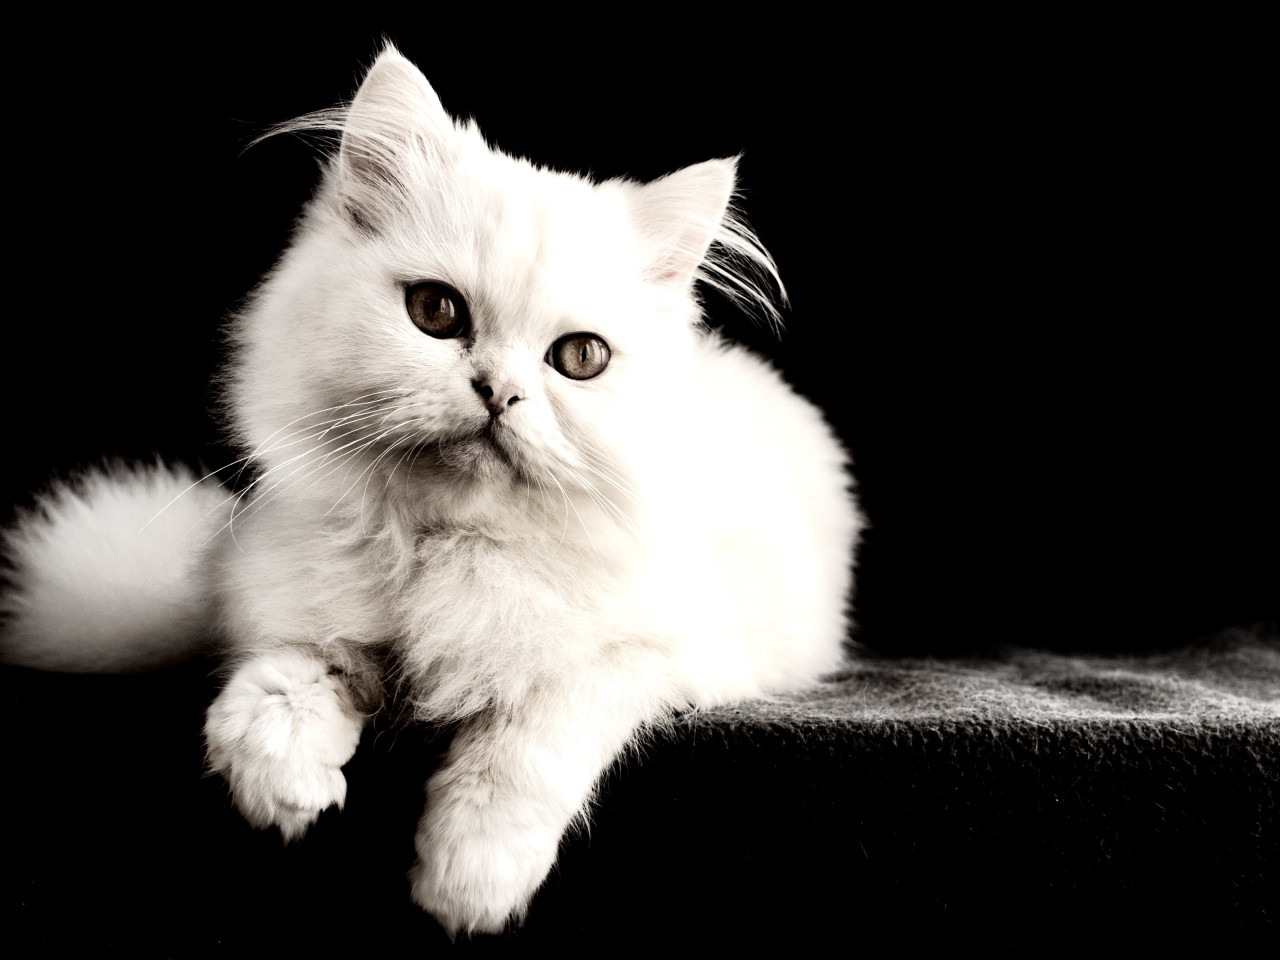 White cat wallpaper 1280x960